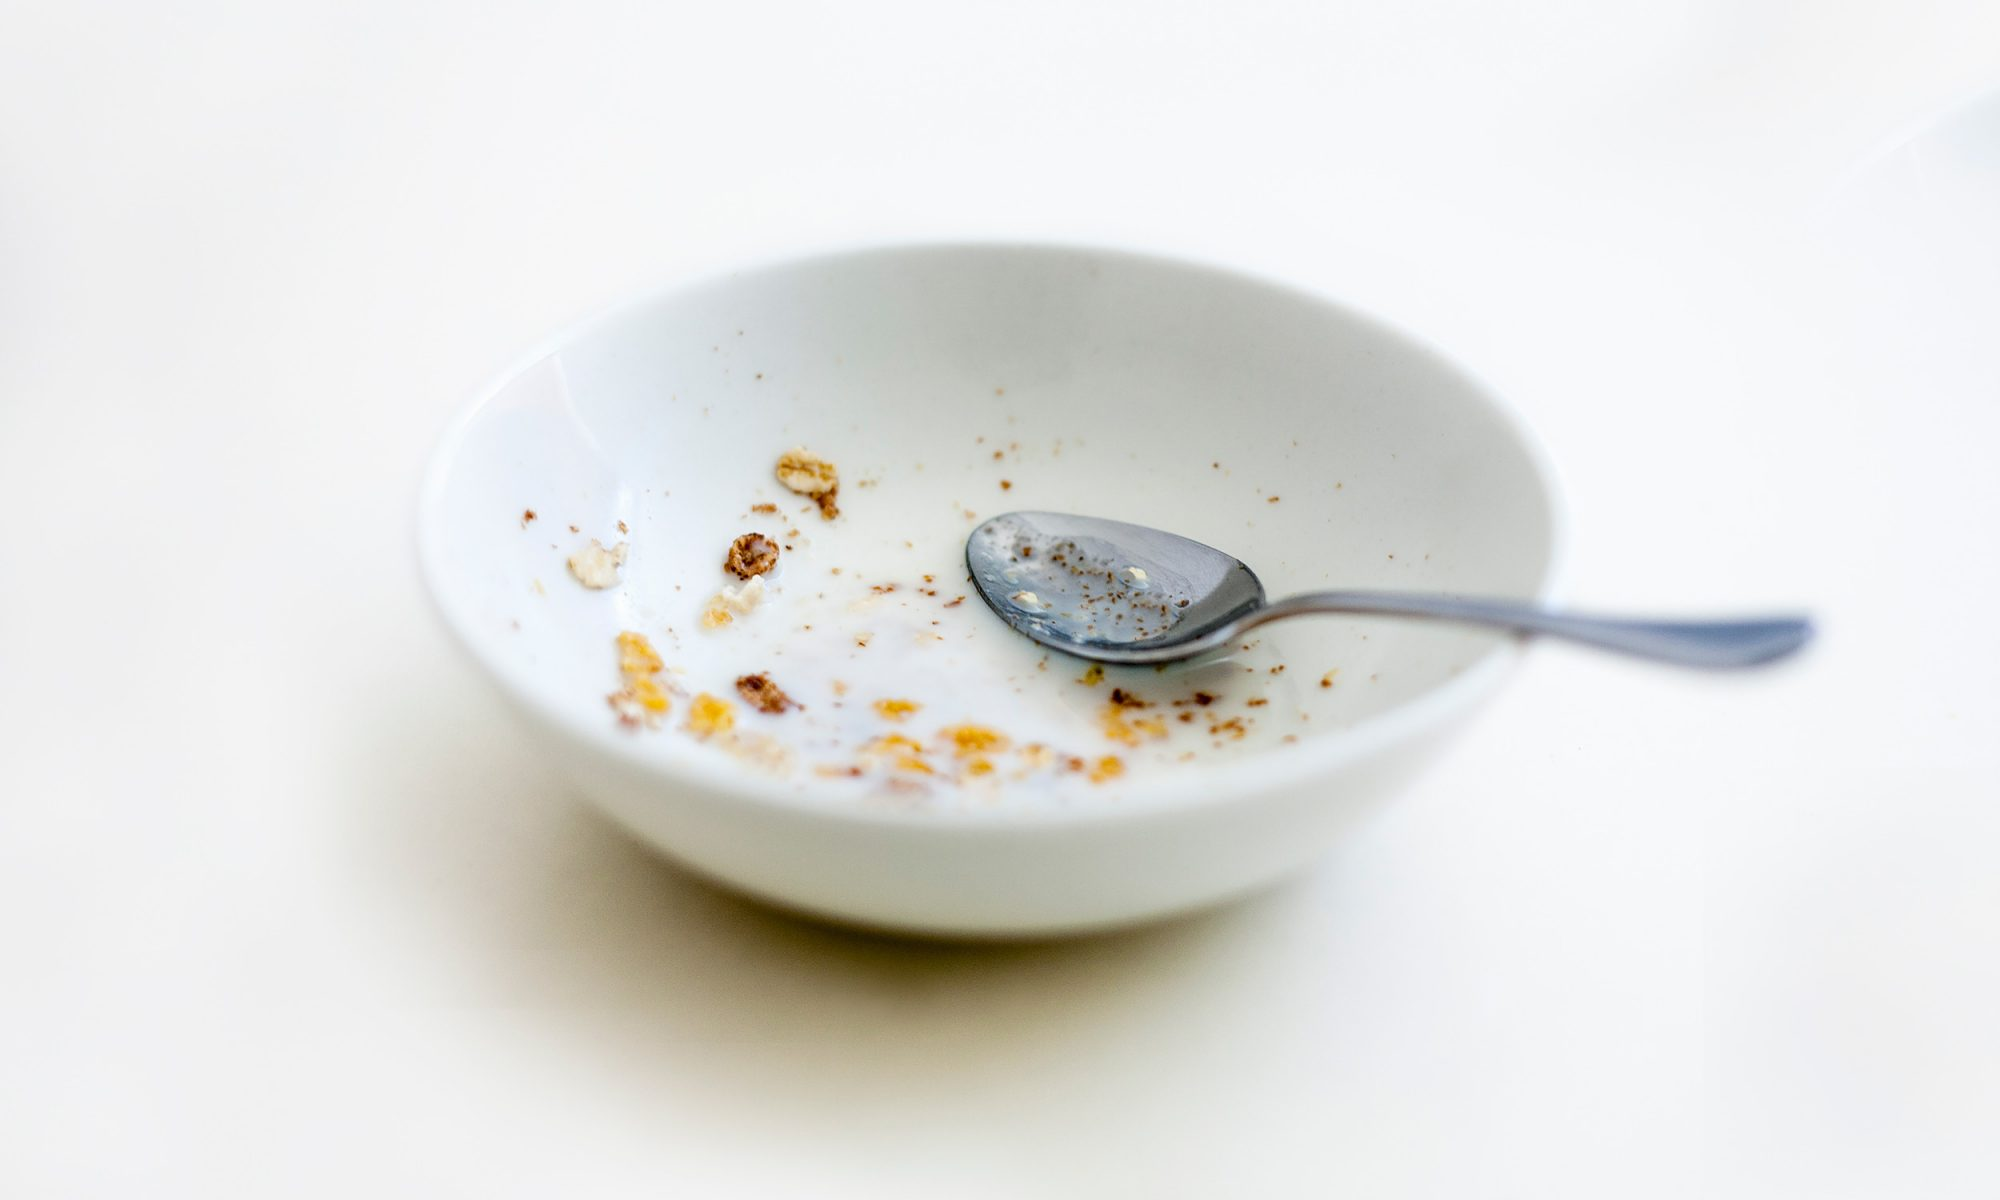 EC: Most New Cereals Only Last for Five Years Before They're Discontinued